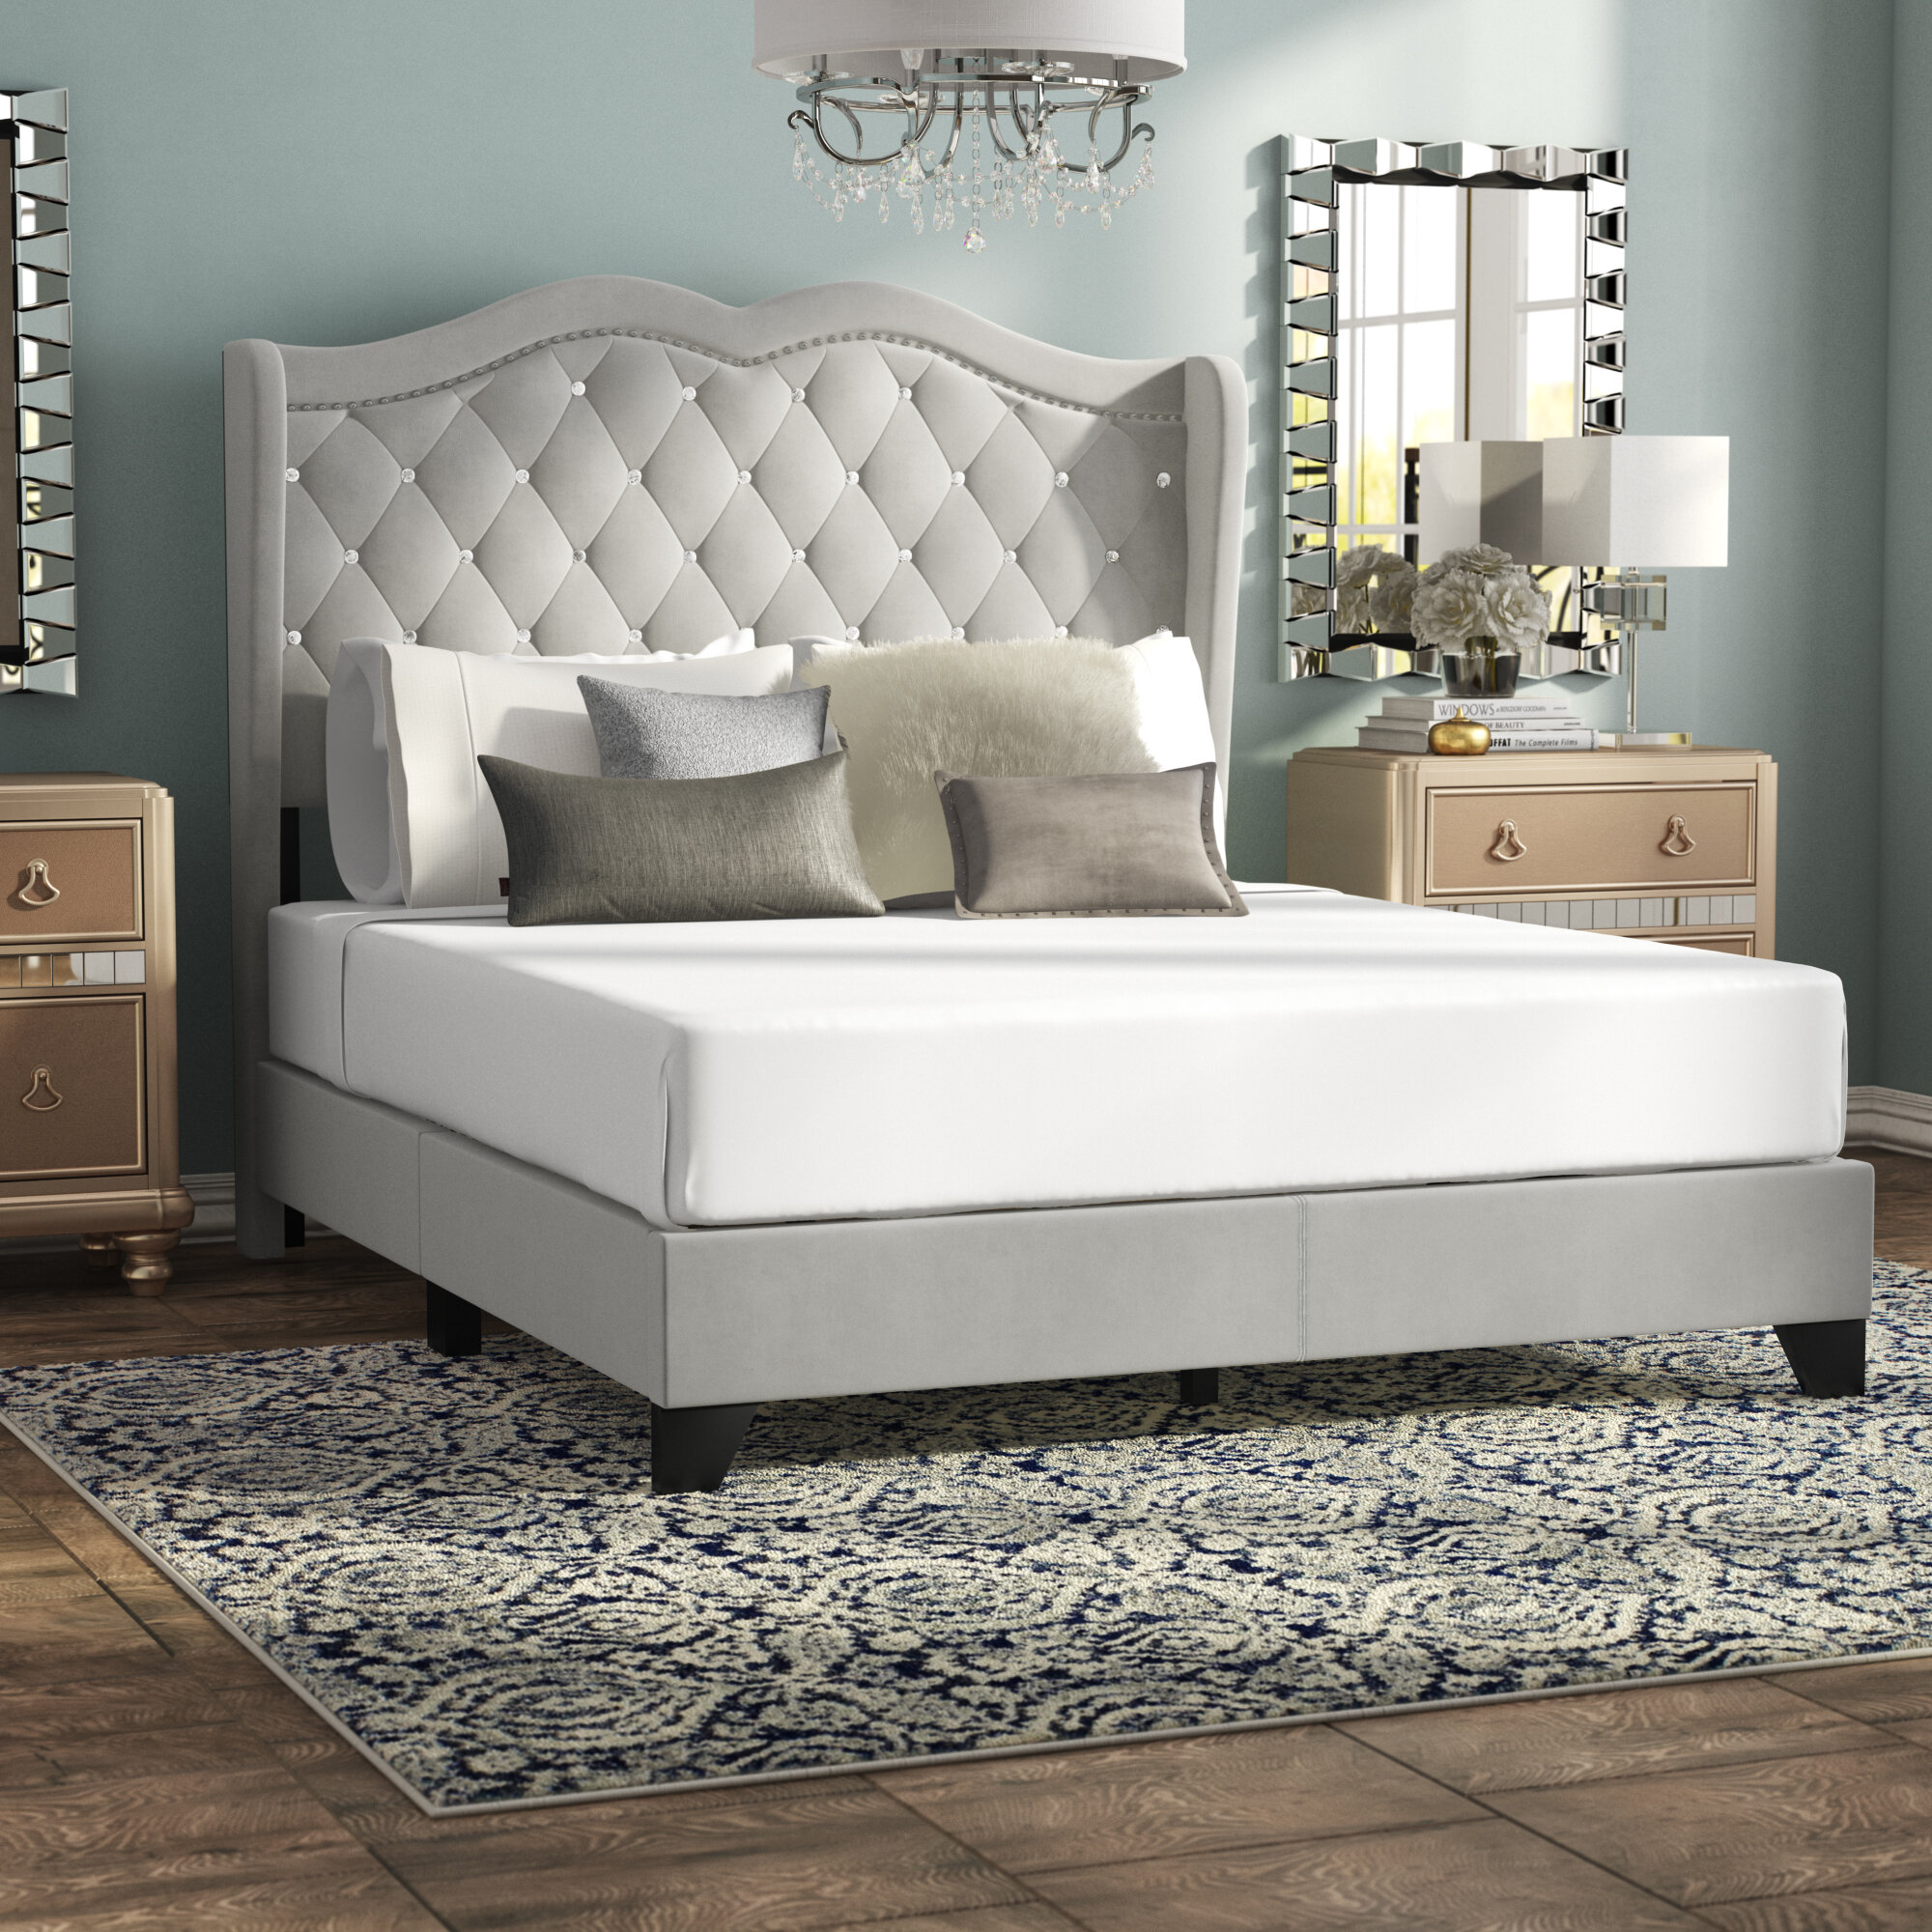 Queen Size Upholstered Beds Up To 60 Off This Labor Day Wayfair